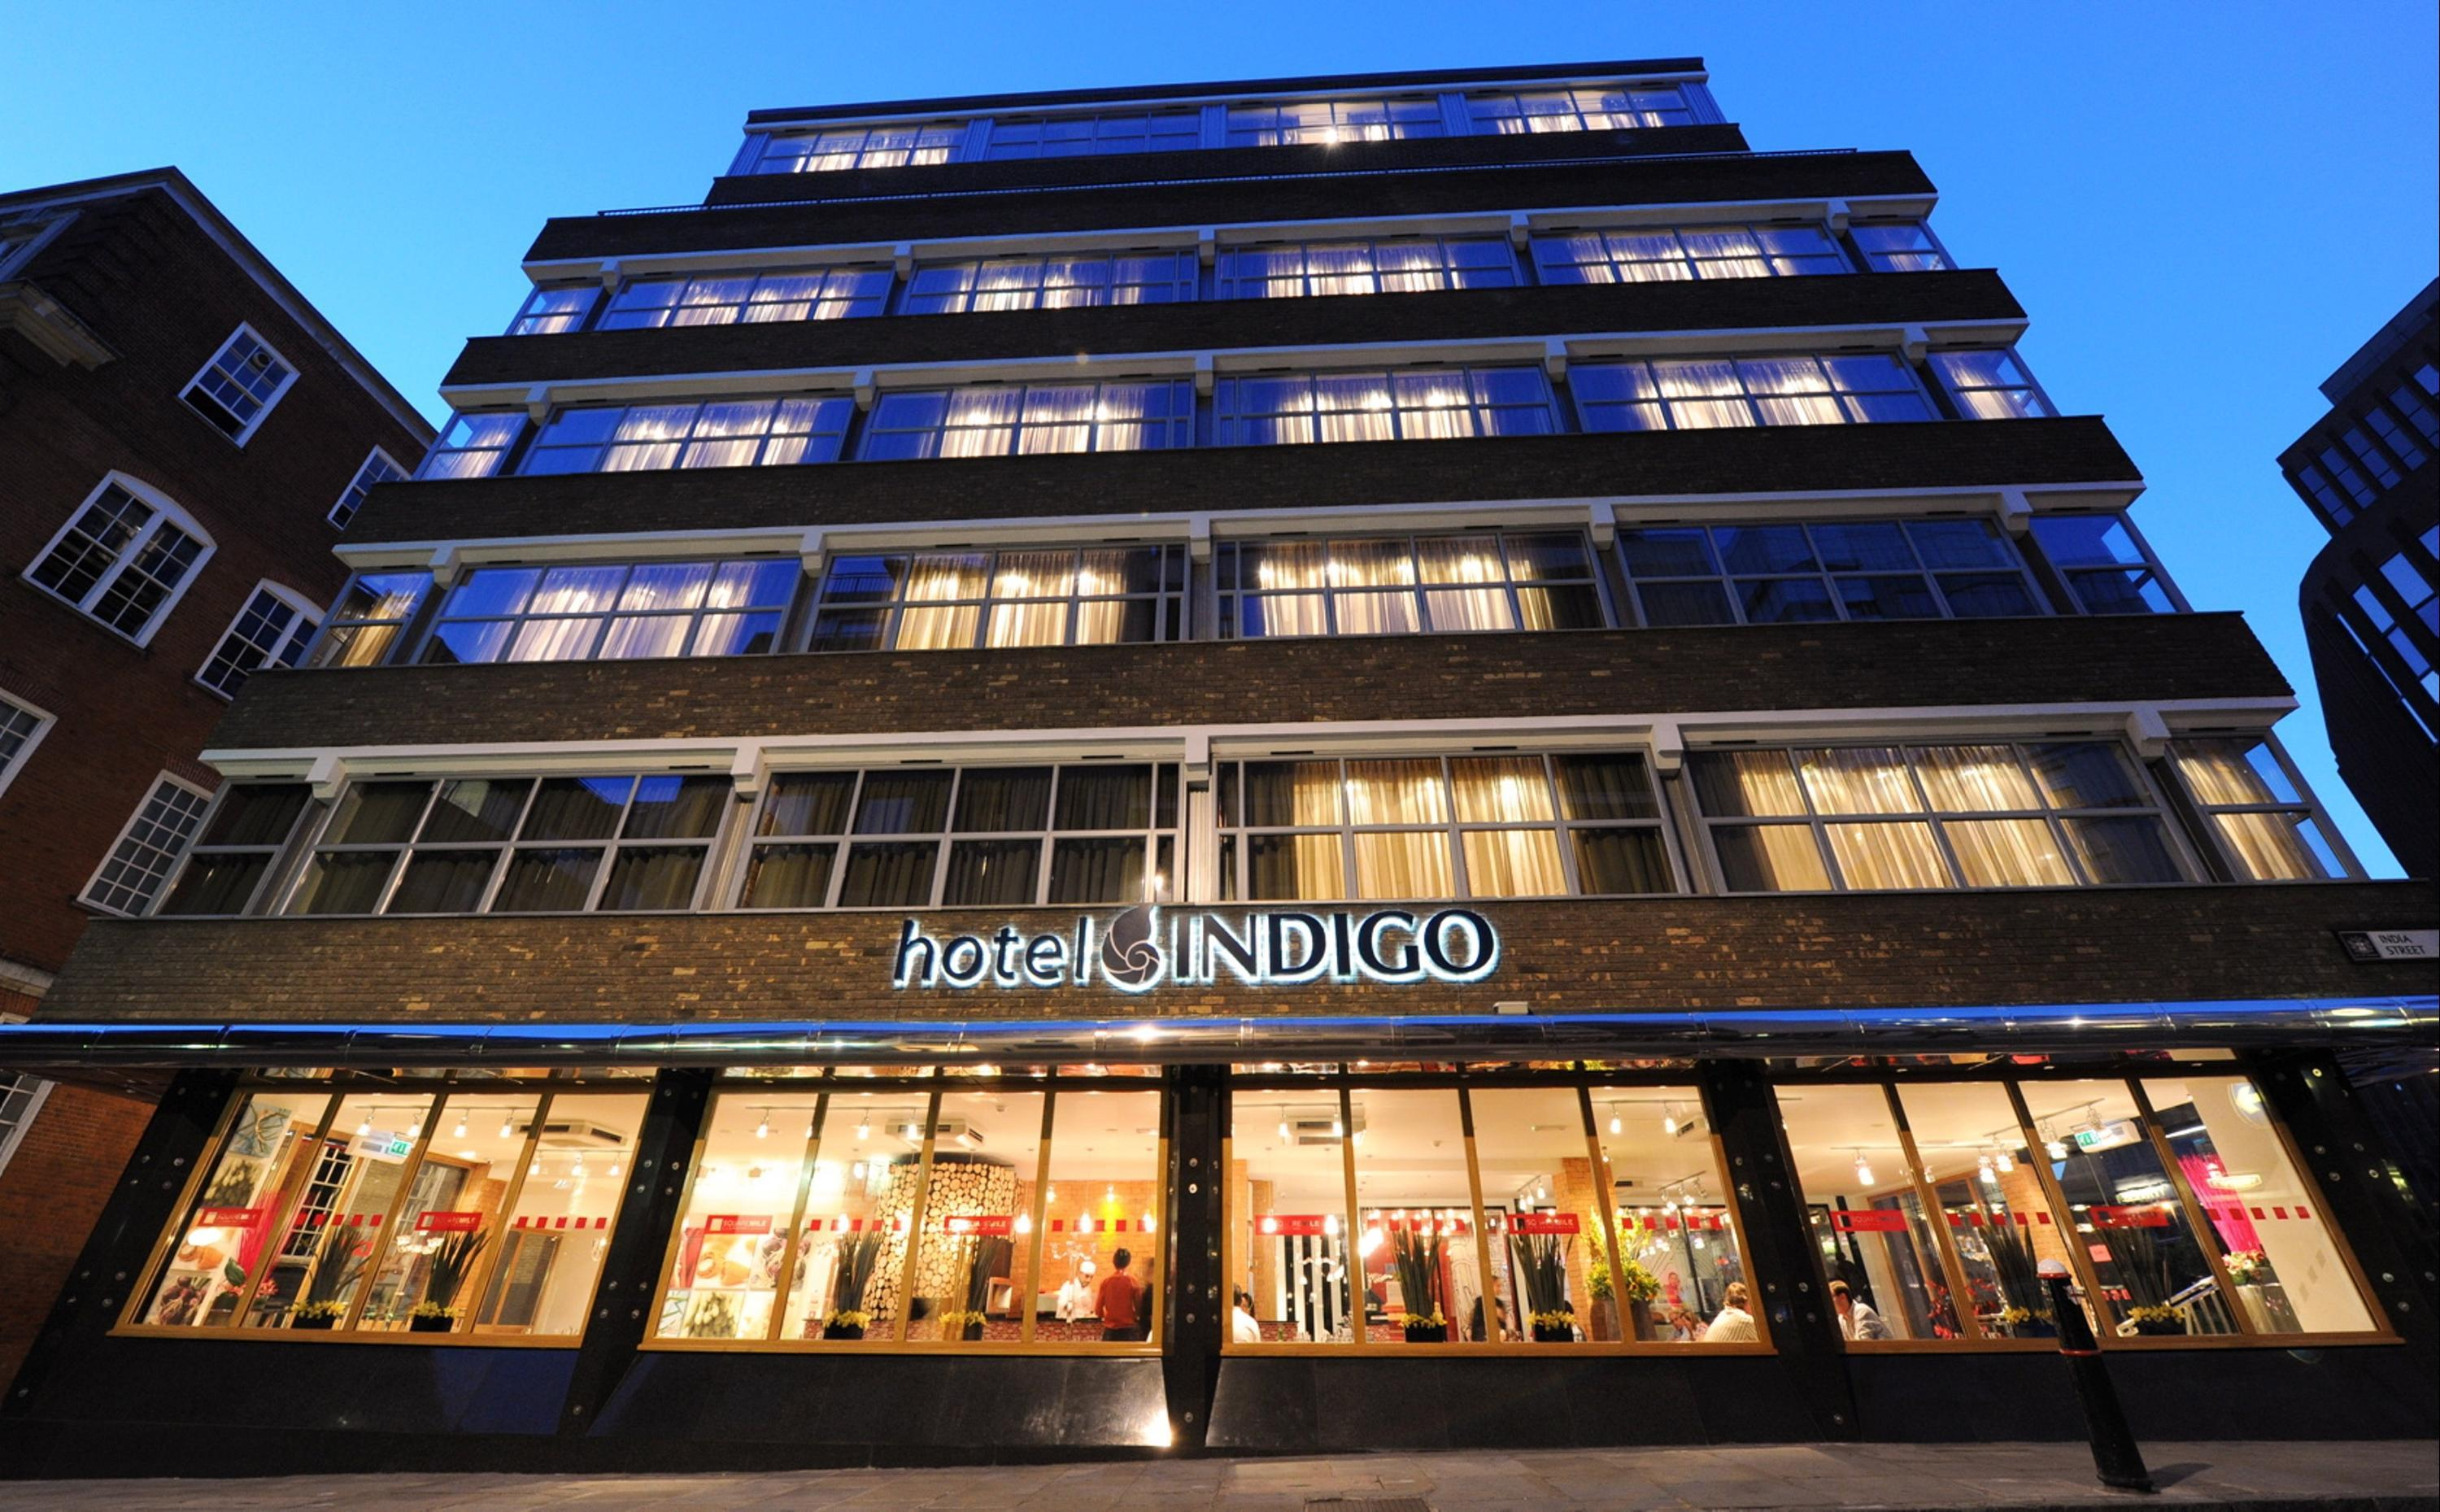 Hotel Indigo London - Tower Hill